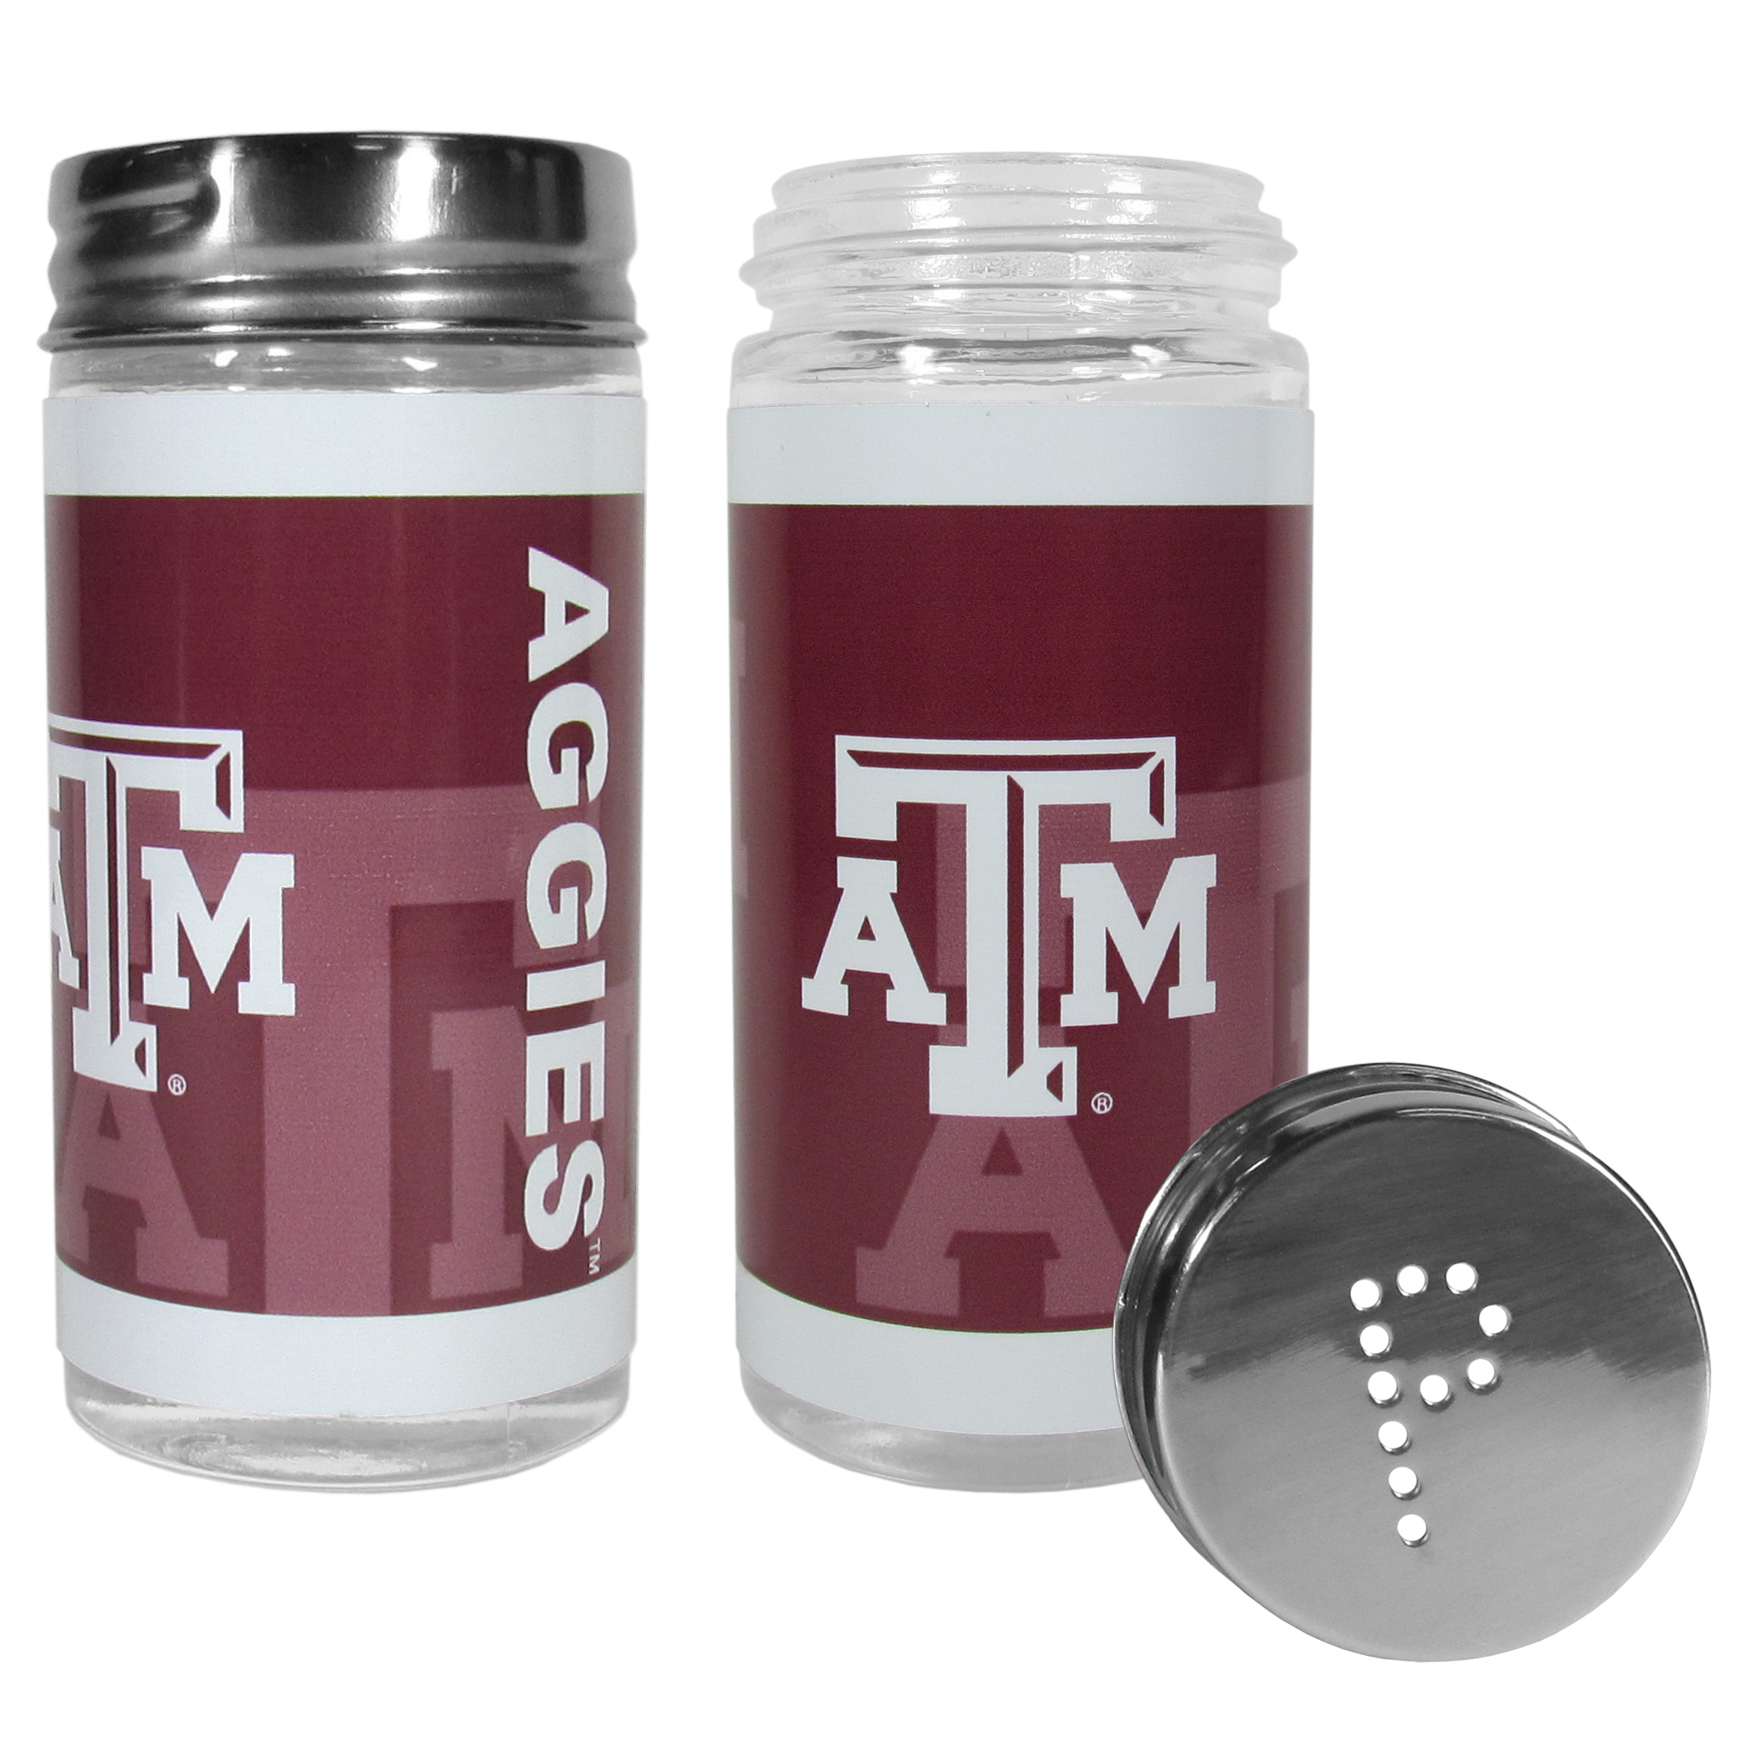 Texas A and M Aggies Tailgater Salt and Pepper Shakers - No tailgate party is complete without your Texas A & M Aggies salt & pepper shakers featuring bright team graphics. The glass shakers are 3.75 inches tall and the screw top lids have holes that spell out P and S. These team shakers are a great grill accessory whether you are barbecuing on the patio, picnicing or having a game day party.